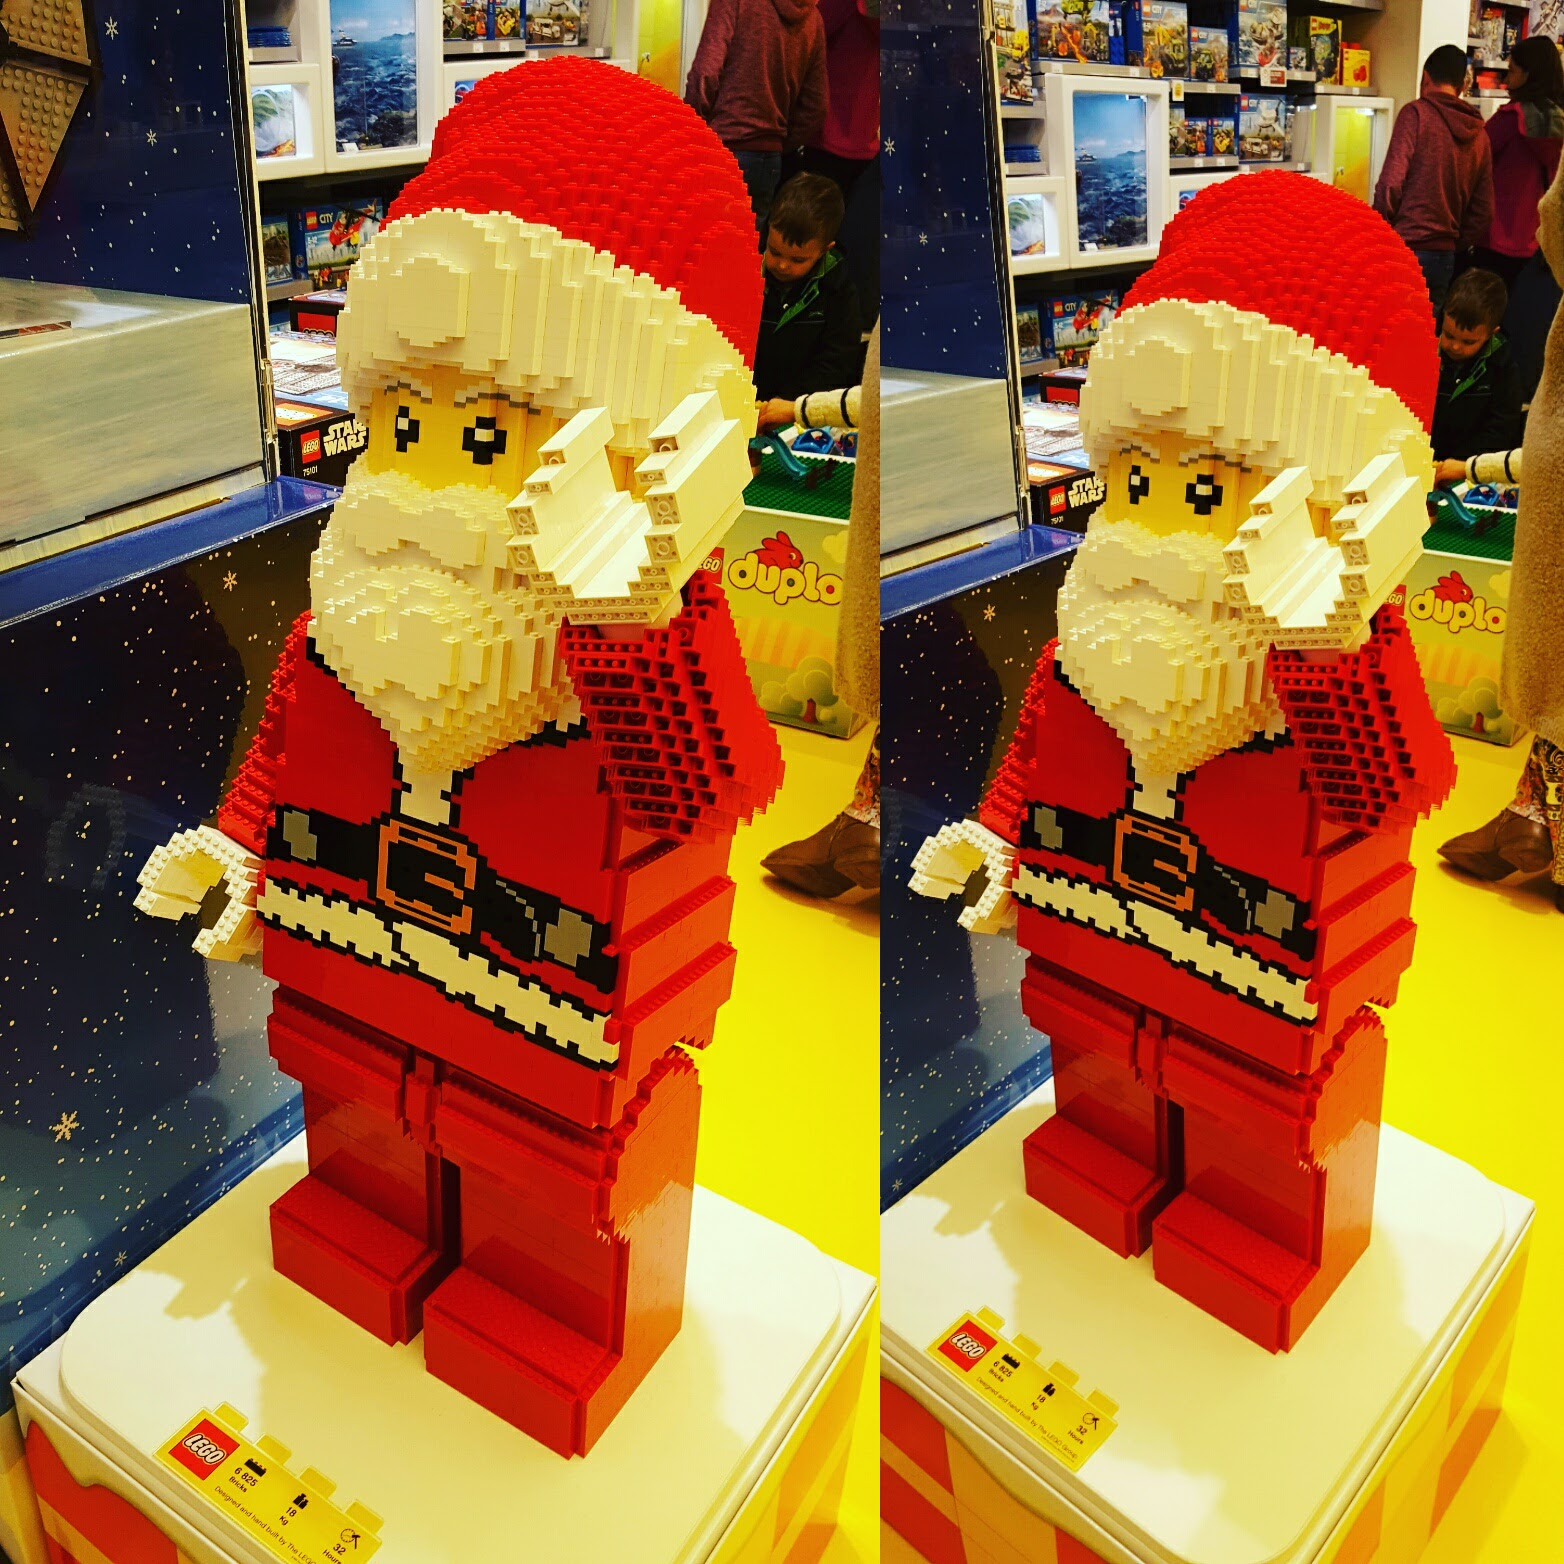 Santa made of little pieces of Lego